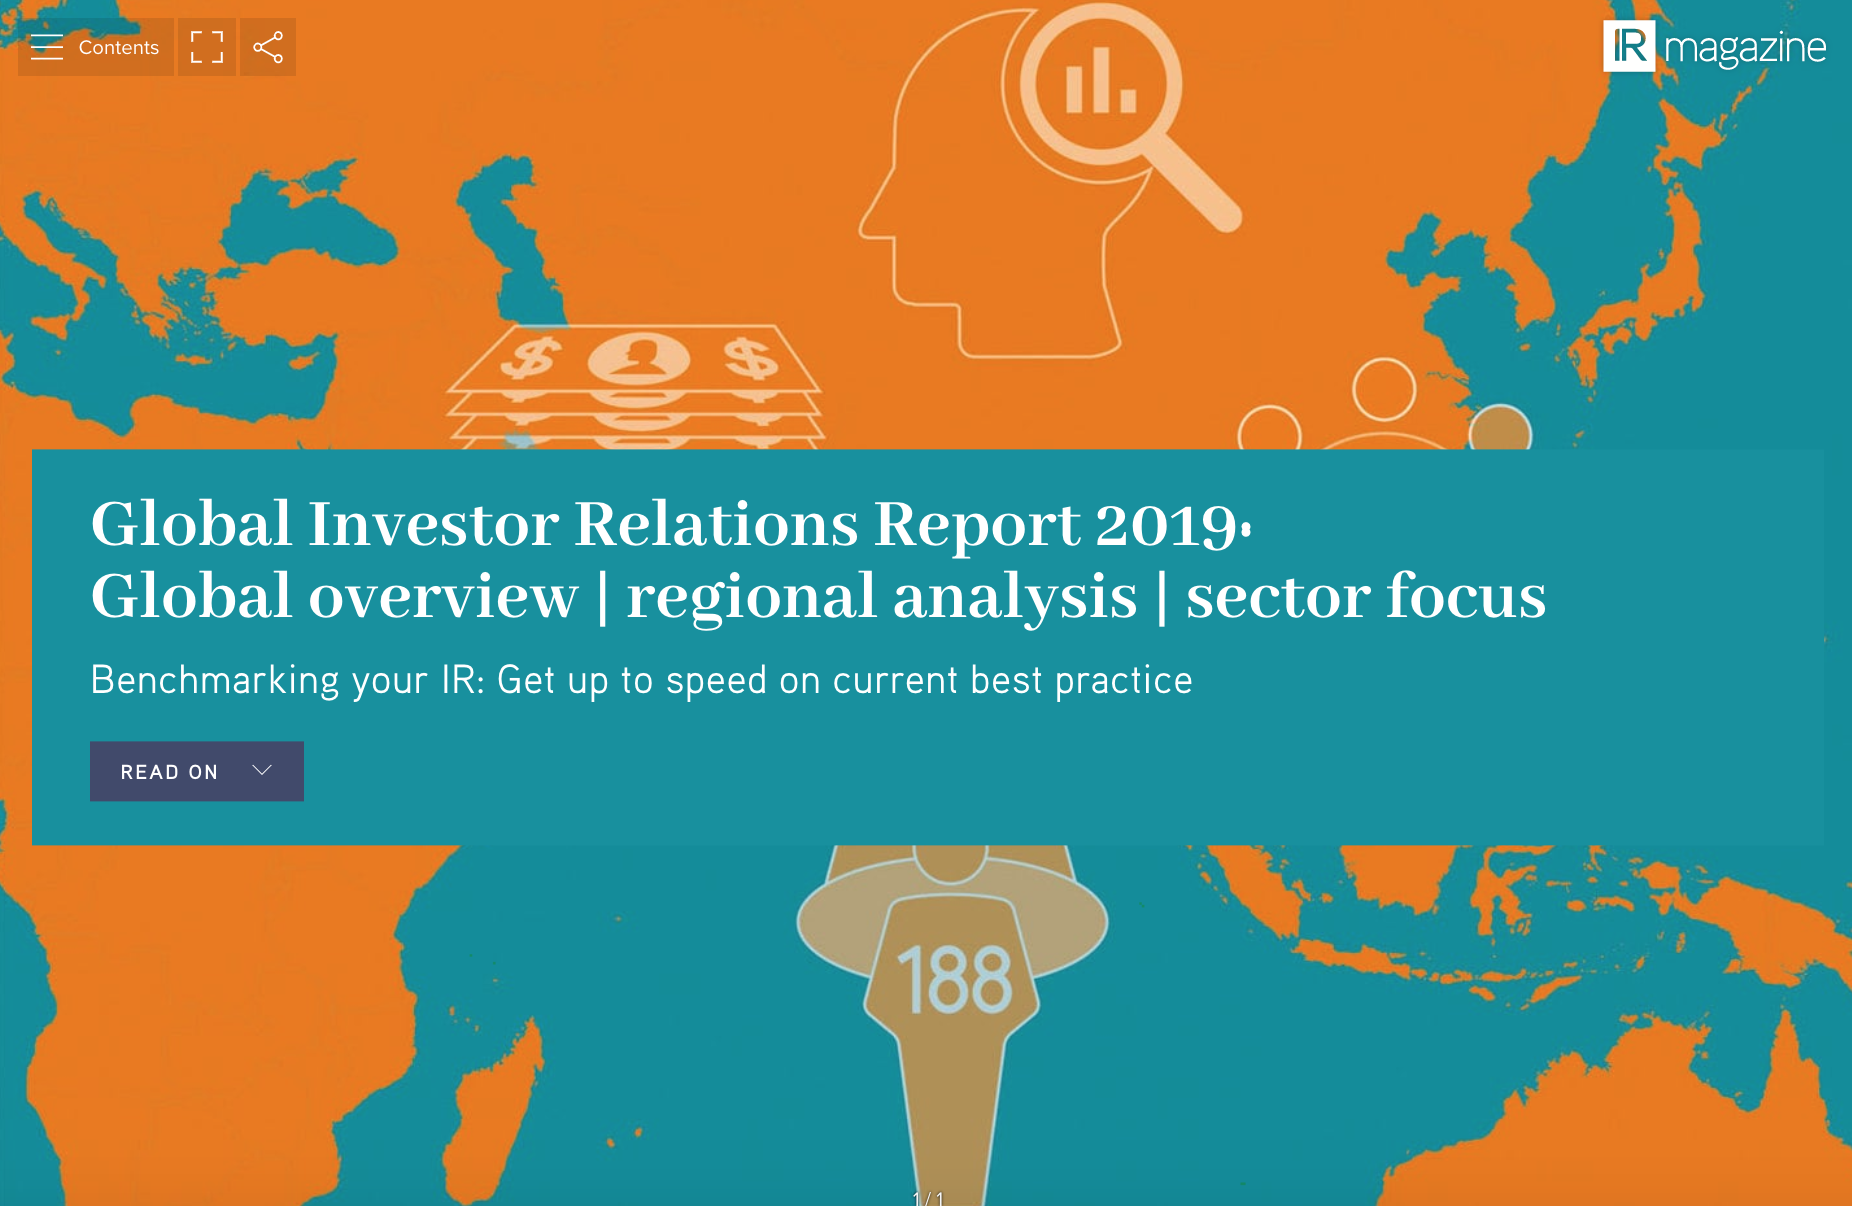 Global Investor Relations research report